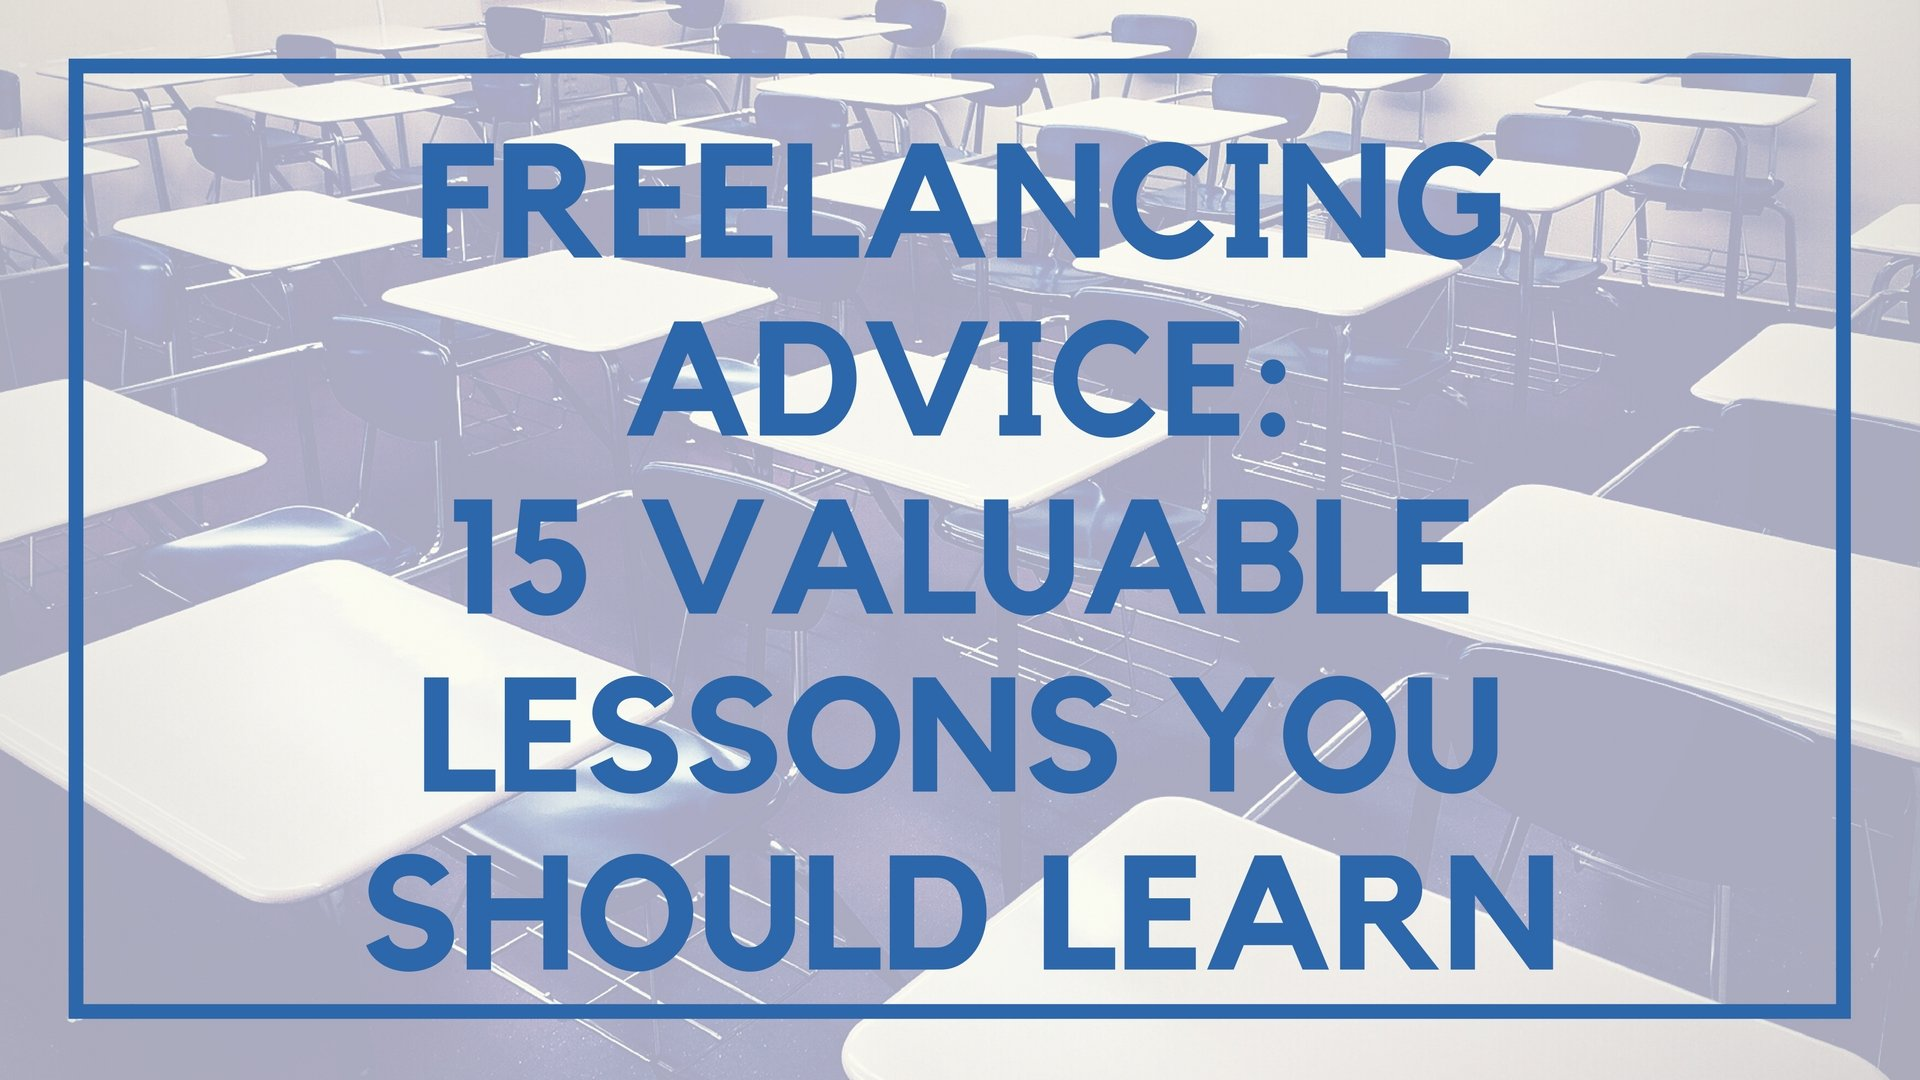 Freelancing Advice: 15 Valuable Lessons You Should Learn